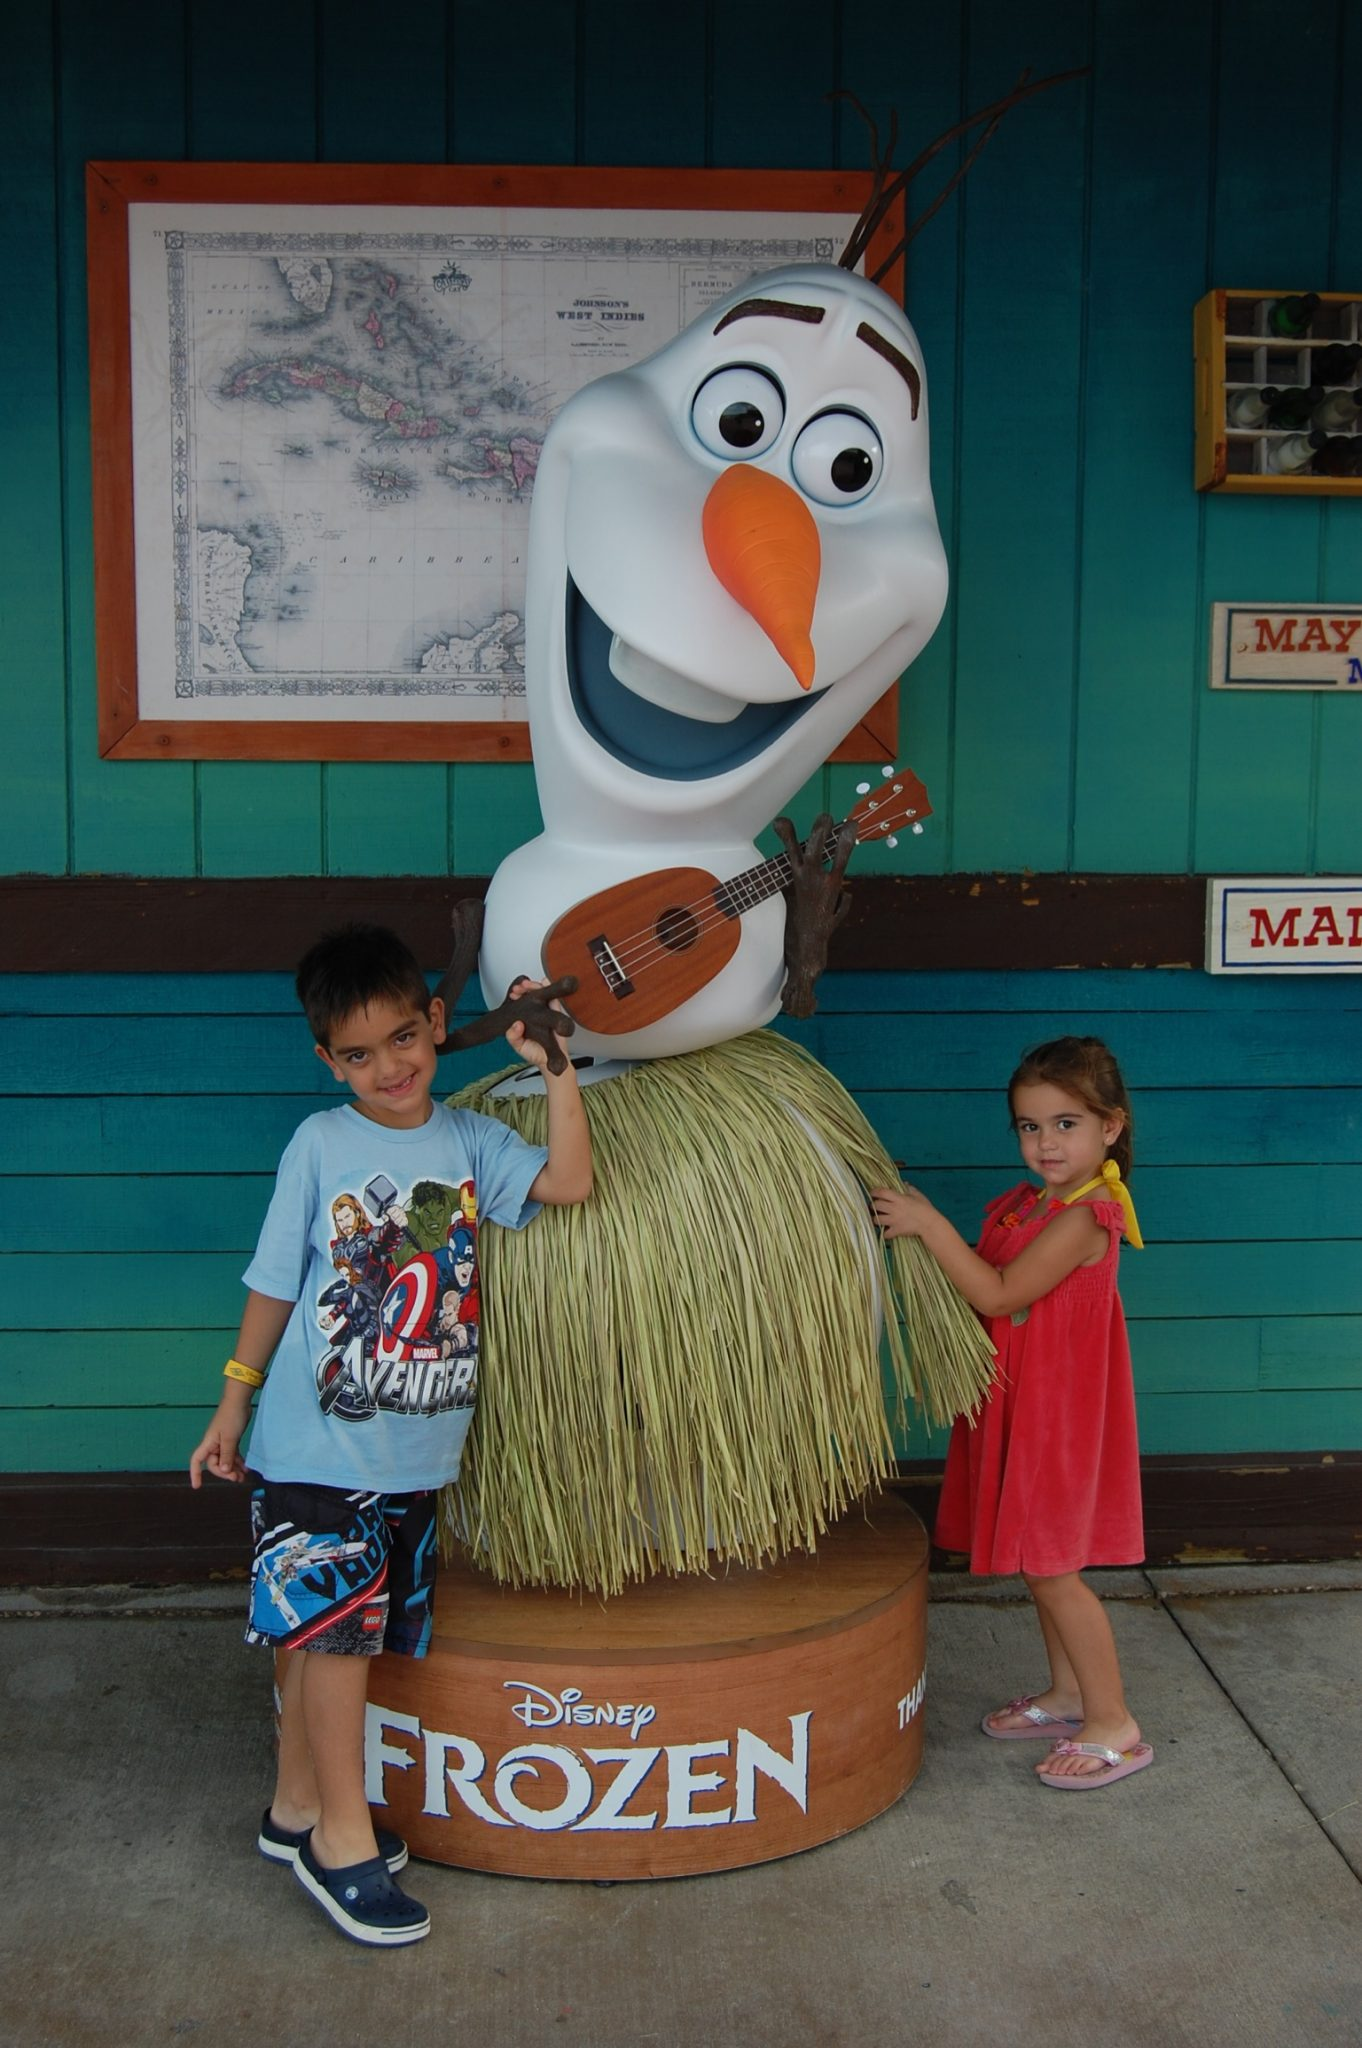 Things to do on Castaway Cay photo opps